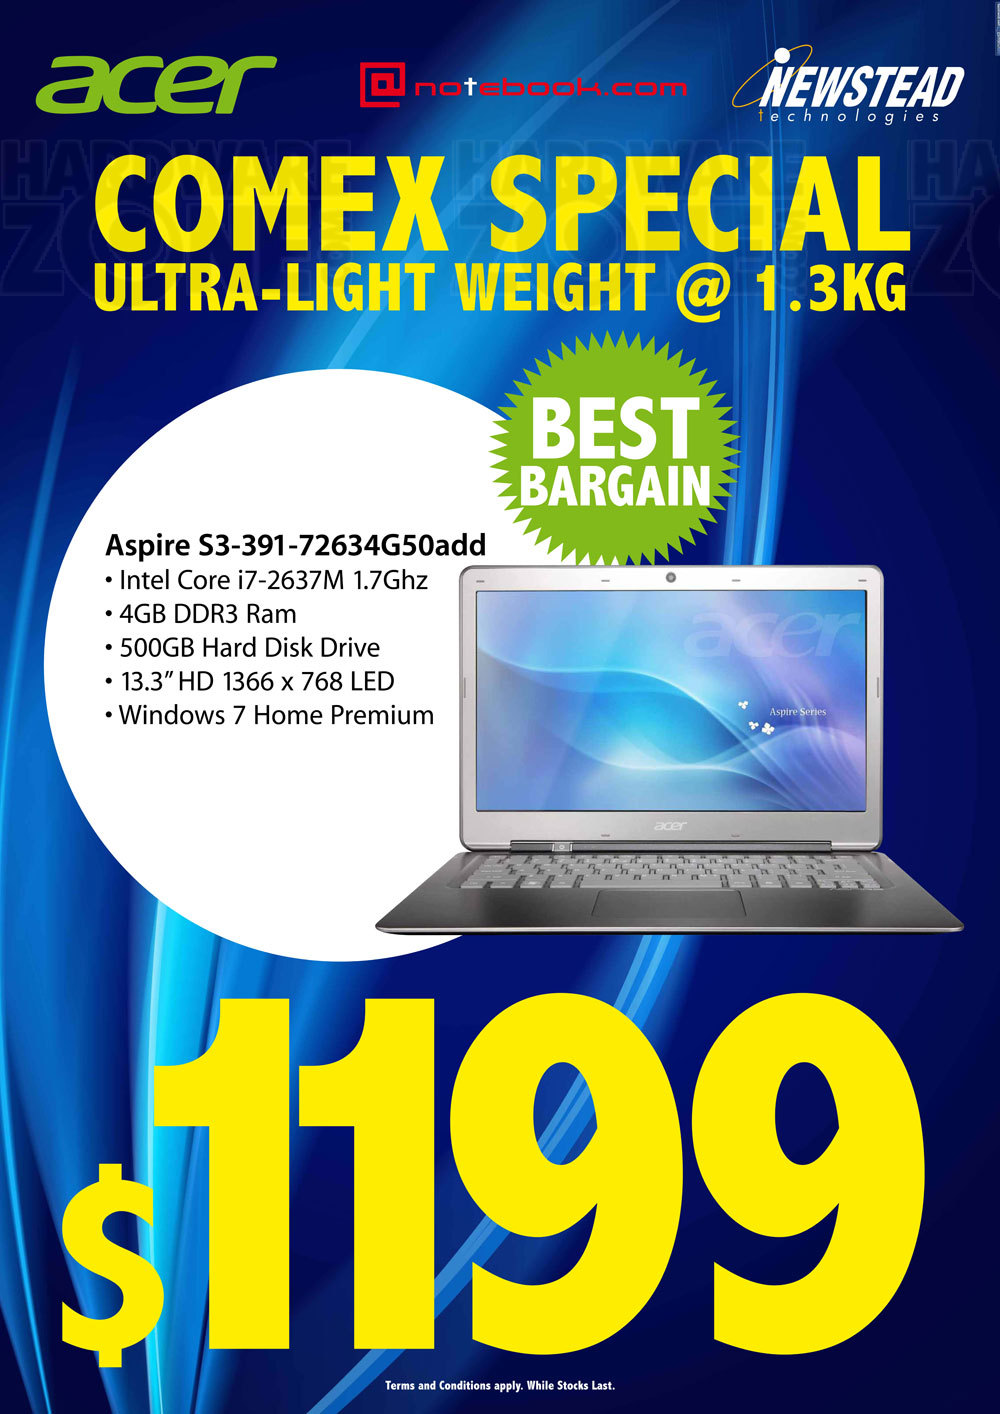 Newstead Acer Notebooks - Page 2